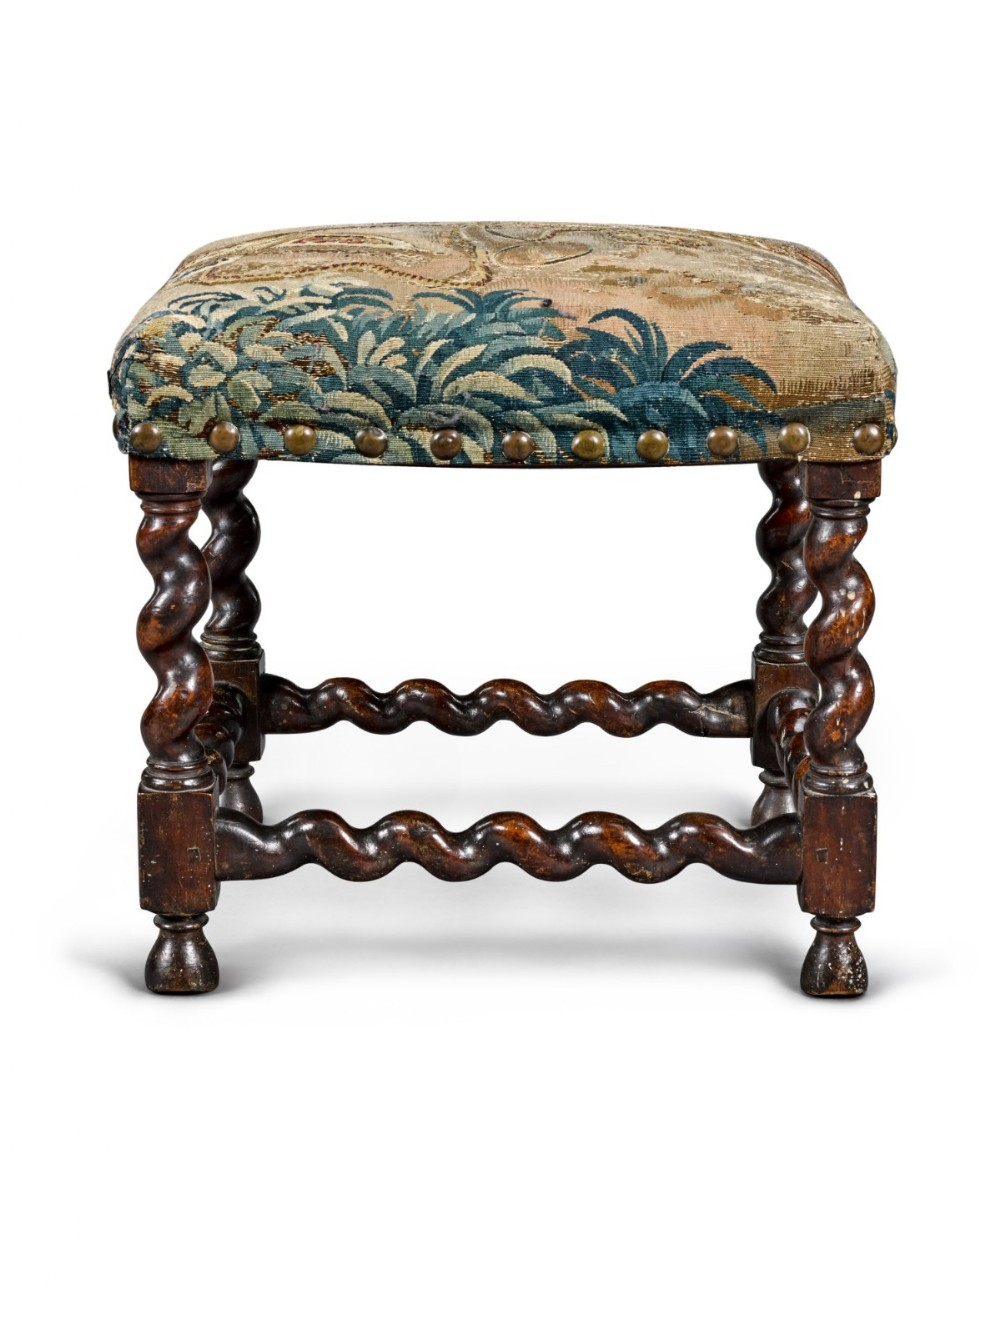 fine 17th century barley or solomonic twist baroque walnut stool with period tapestry